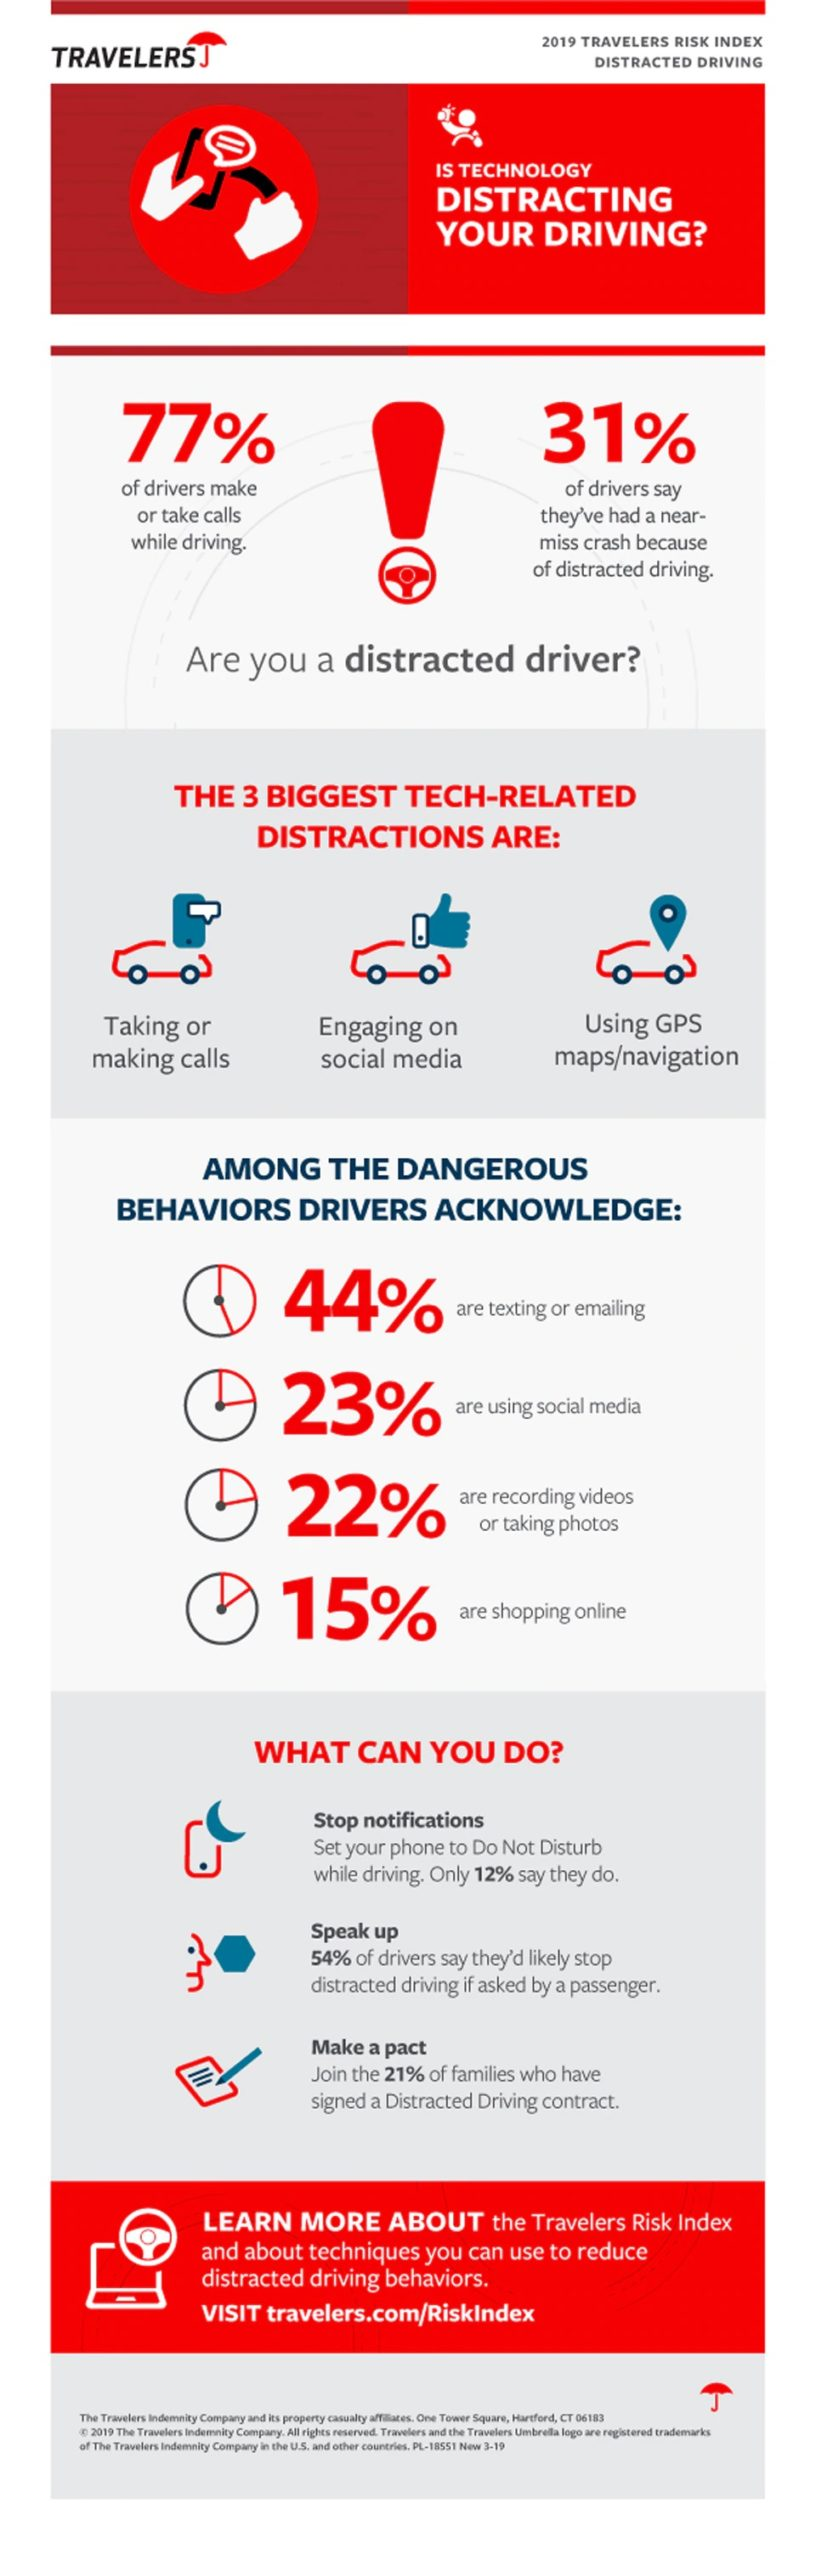 Distracted driving poll by Travelers.com